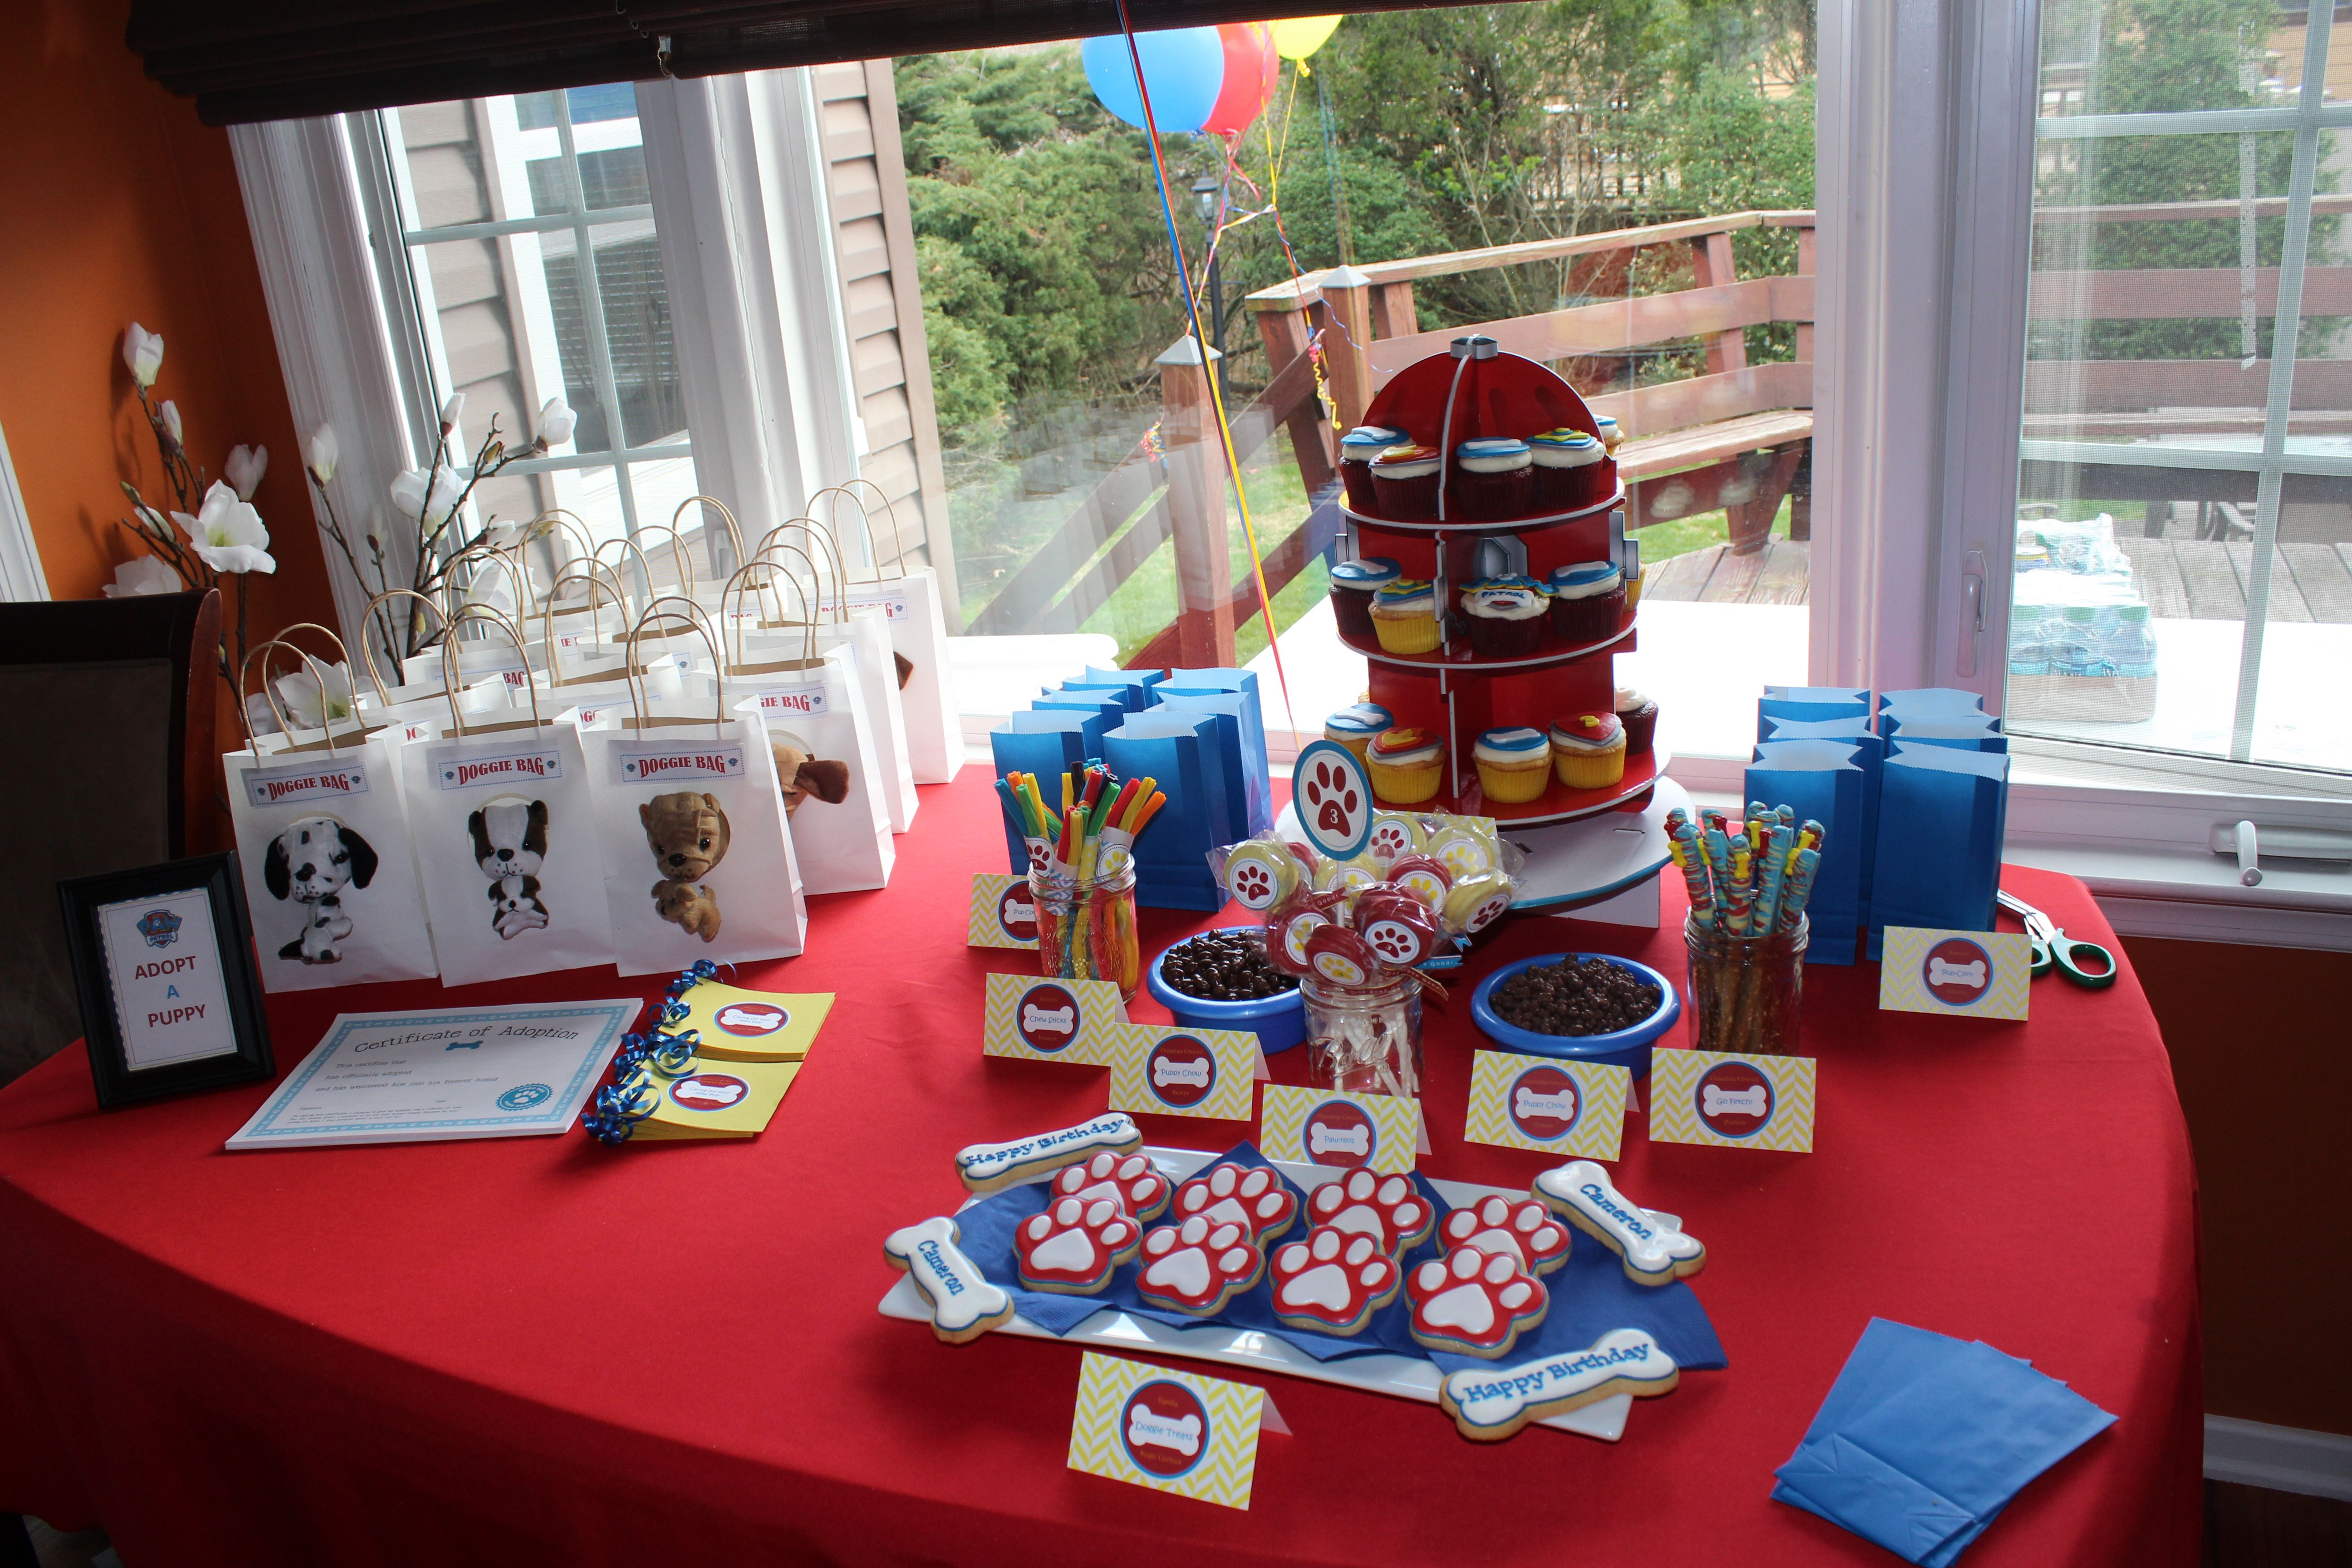 Paw Patrol Themed Dessert Table Everything Is Diy Except The Fire Hydrant Cupcake Stand Amazon Paw Patrol Birthday Party Paw Patrol Birthday Paw Patrol Party